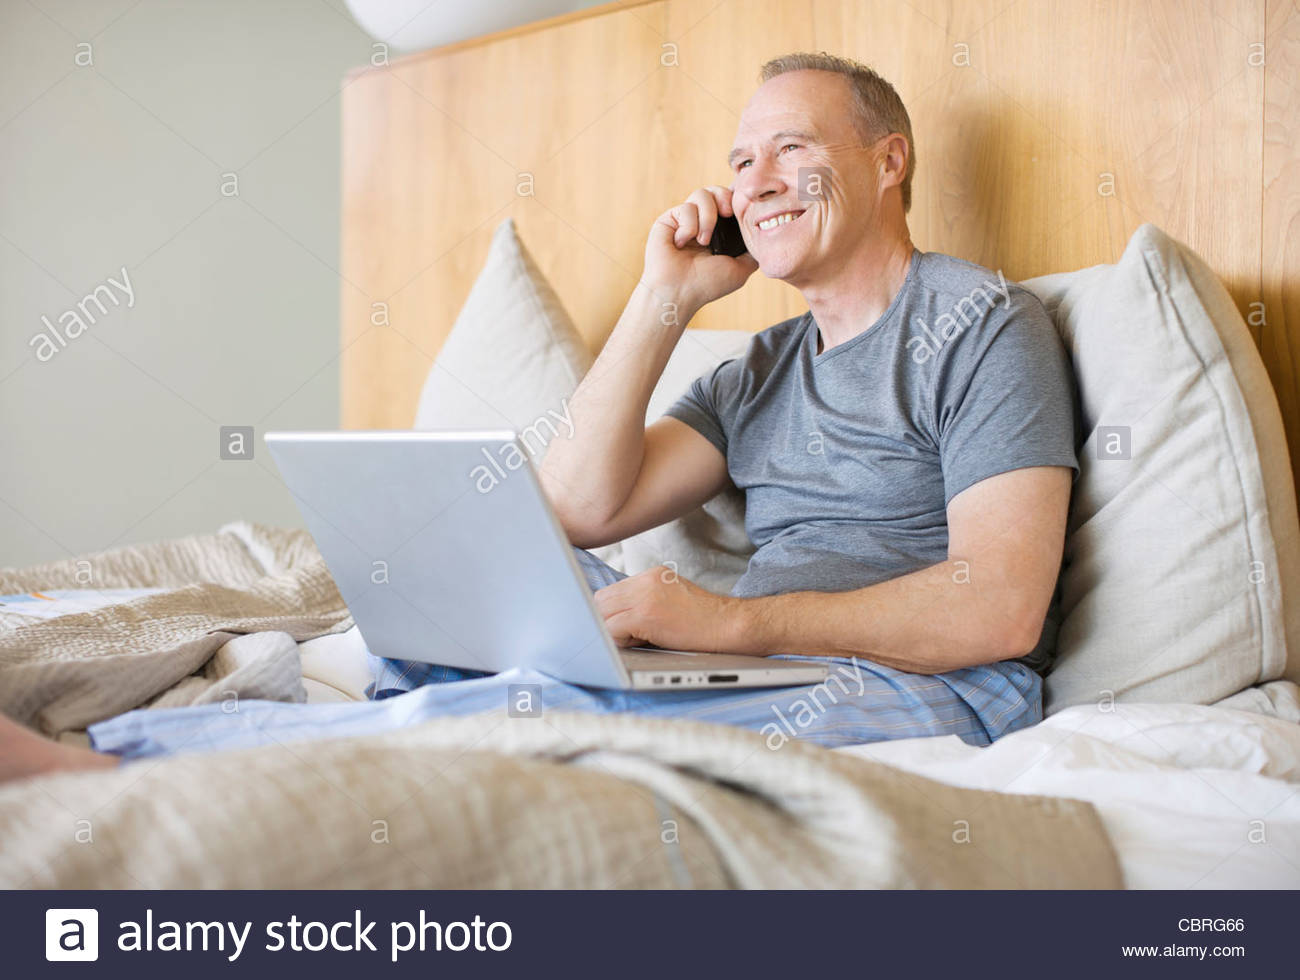 Man sitting in bed using laptop and cell phone - Stock Image